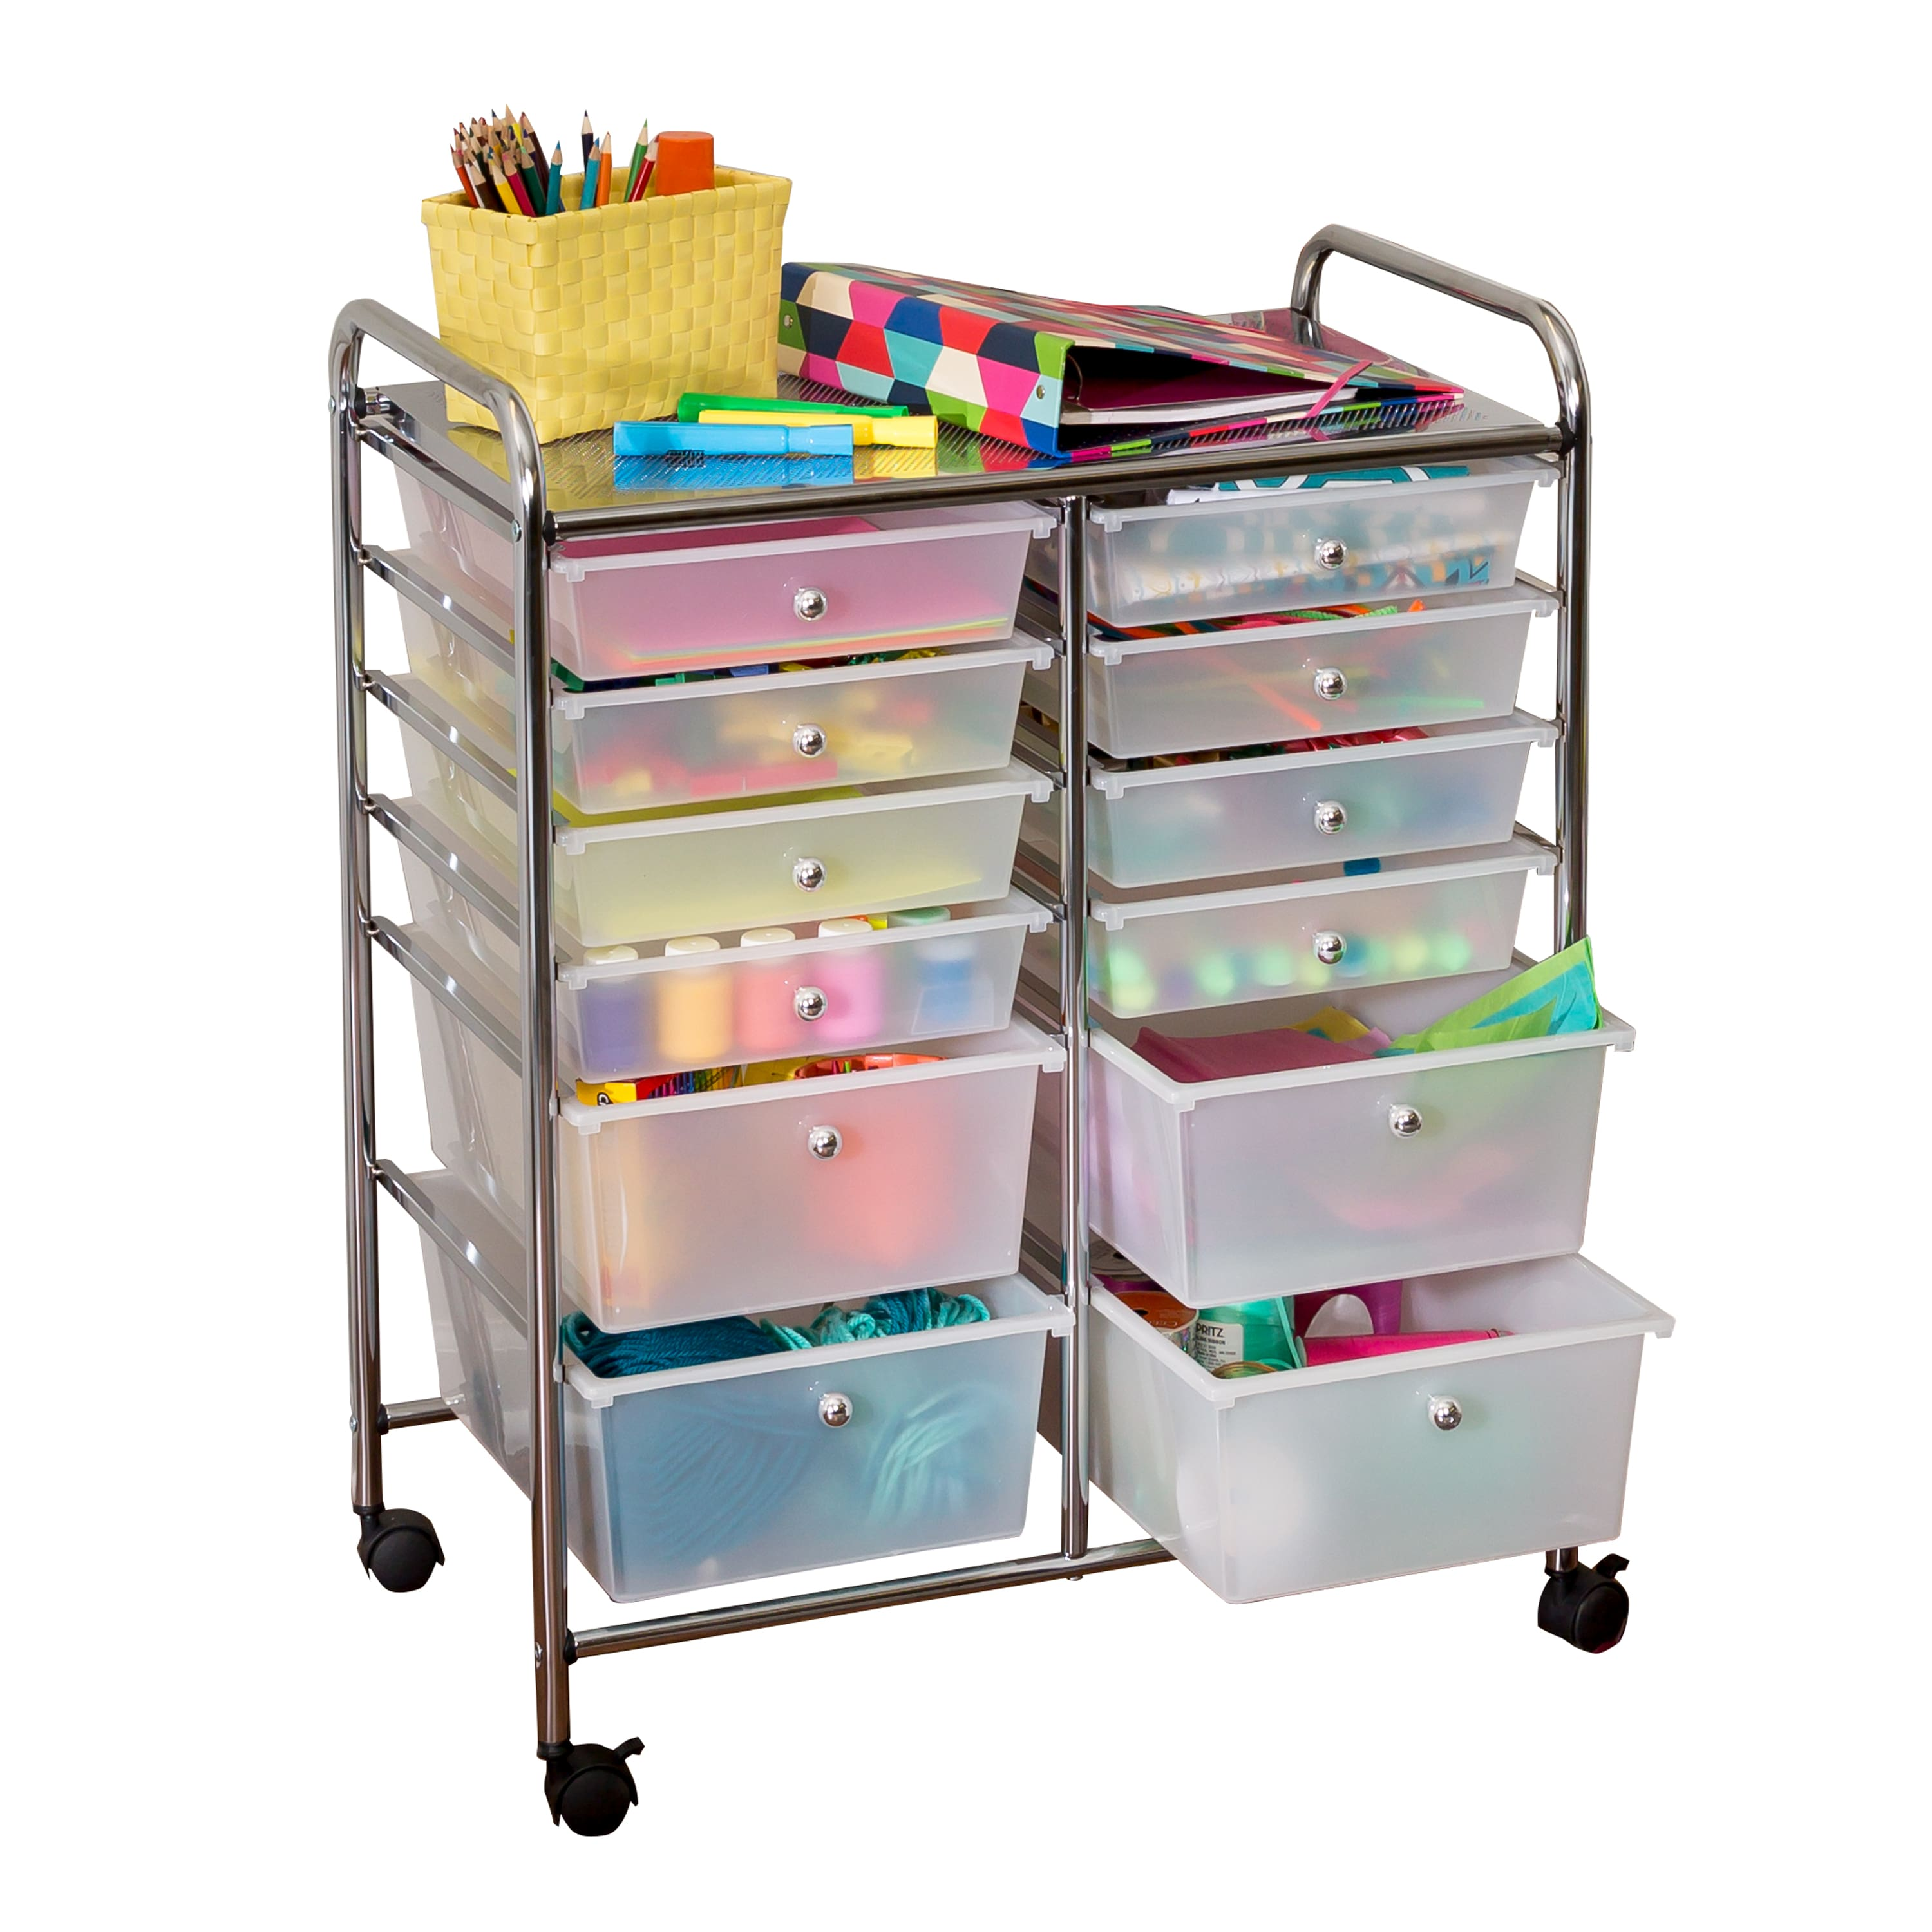 Ordinaire Honey Can Do Rolling Storage Cart With 12 Drawers. Img. Img Img Img Img